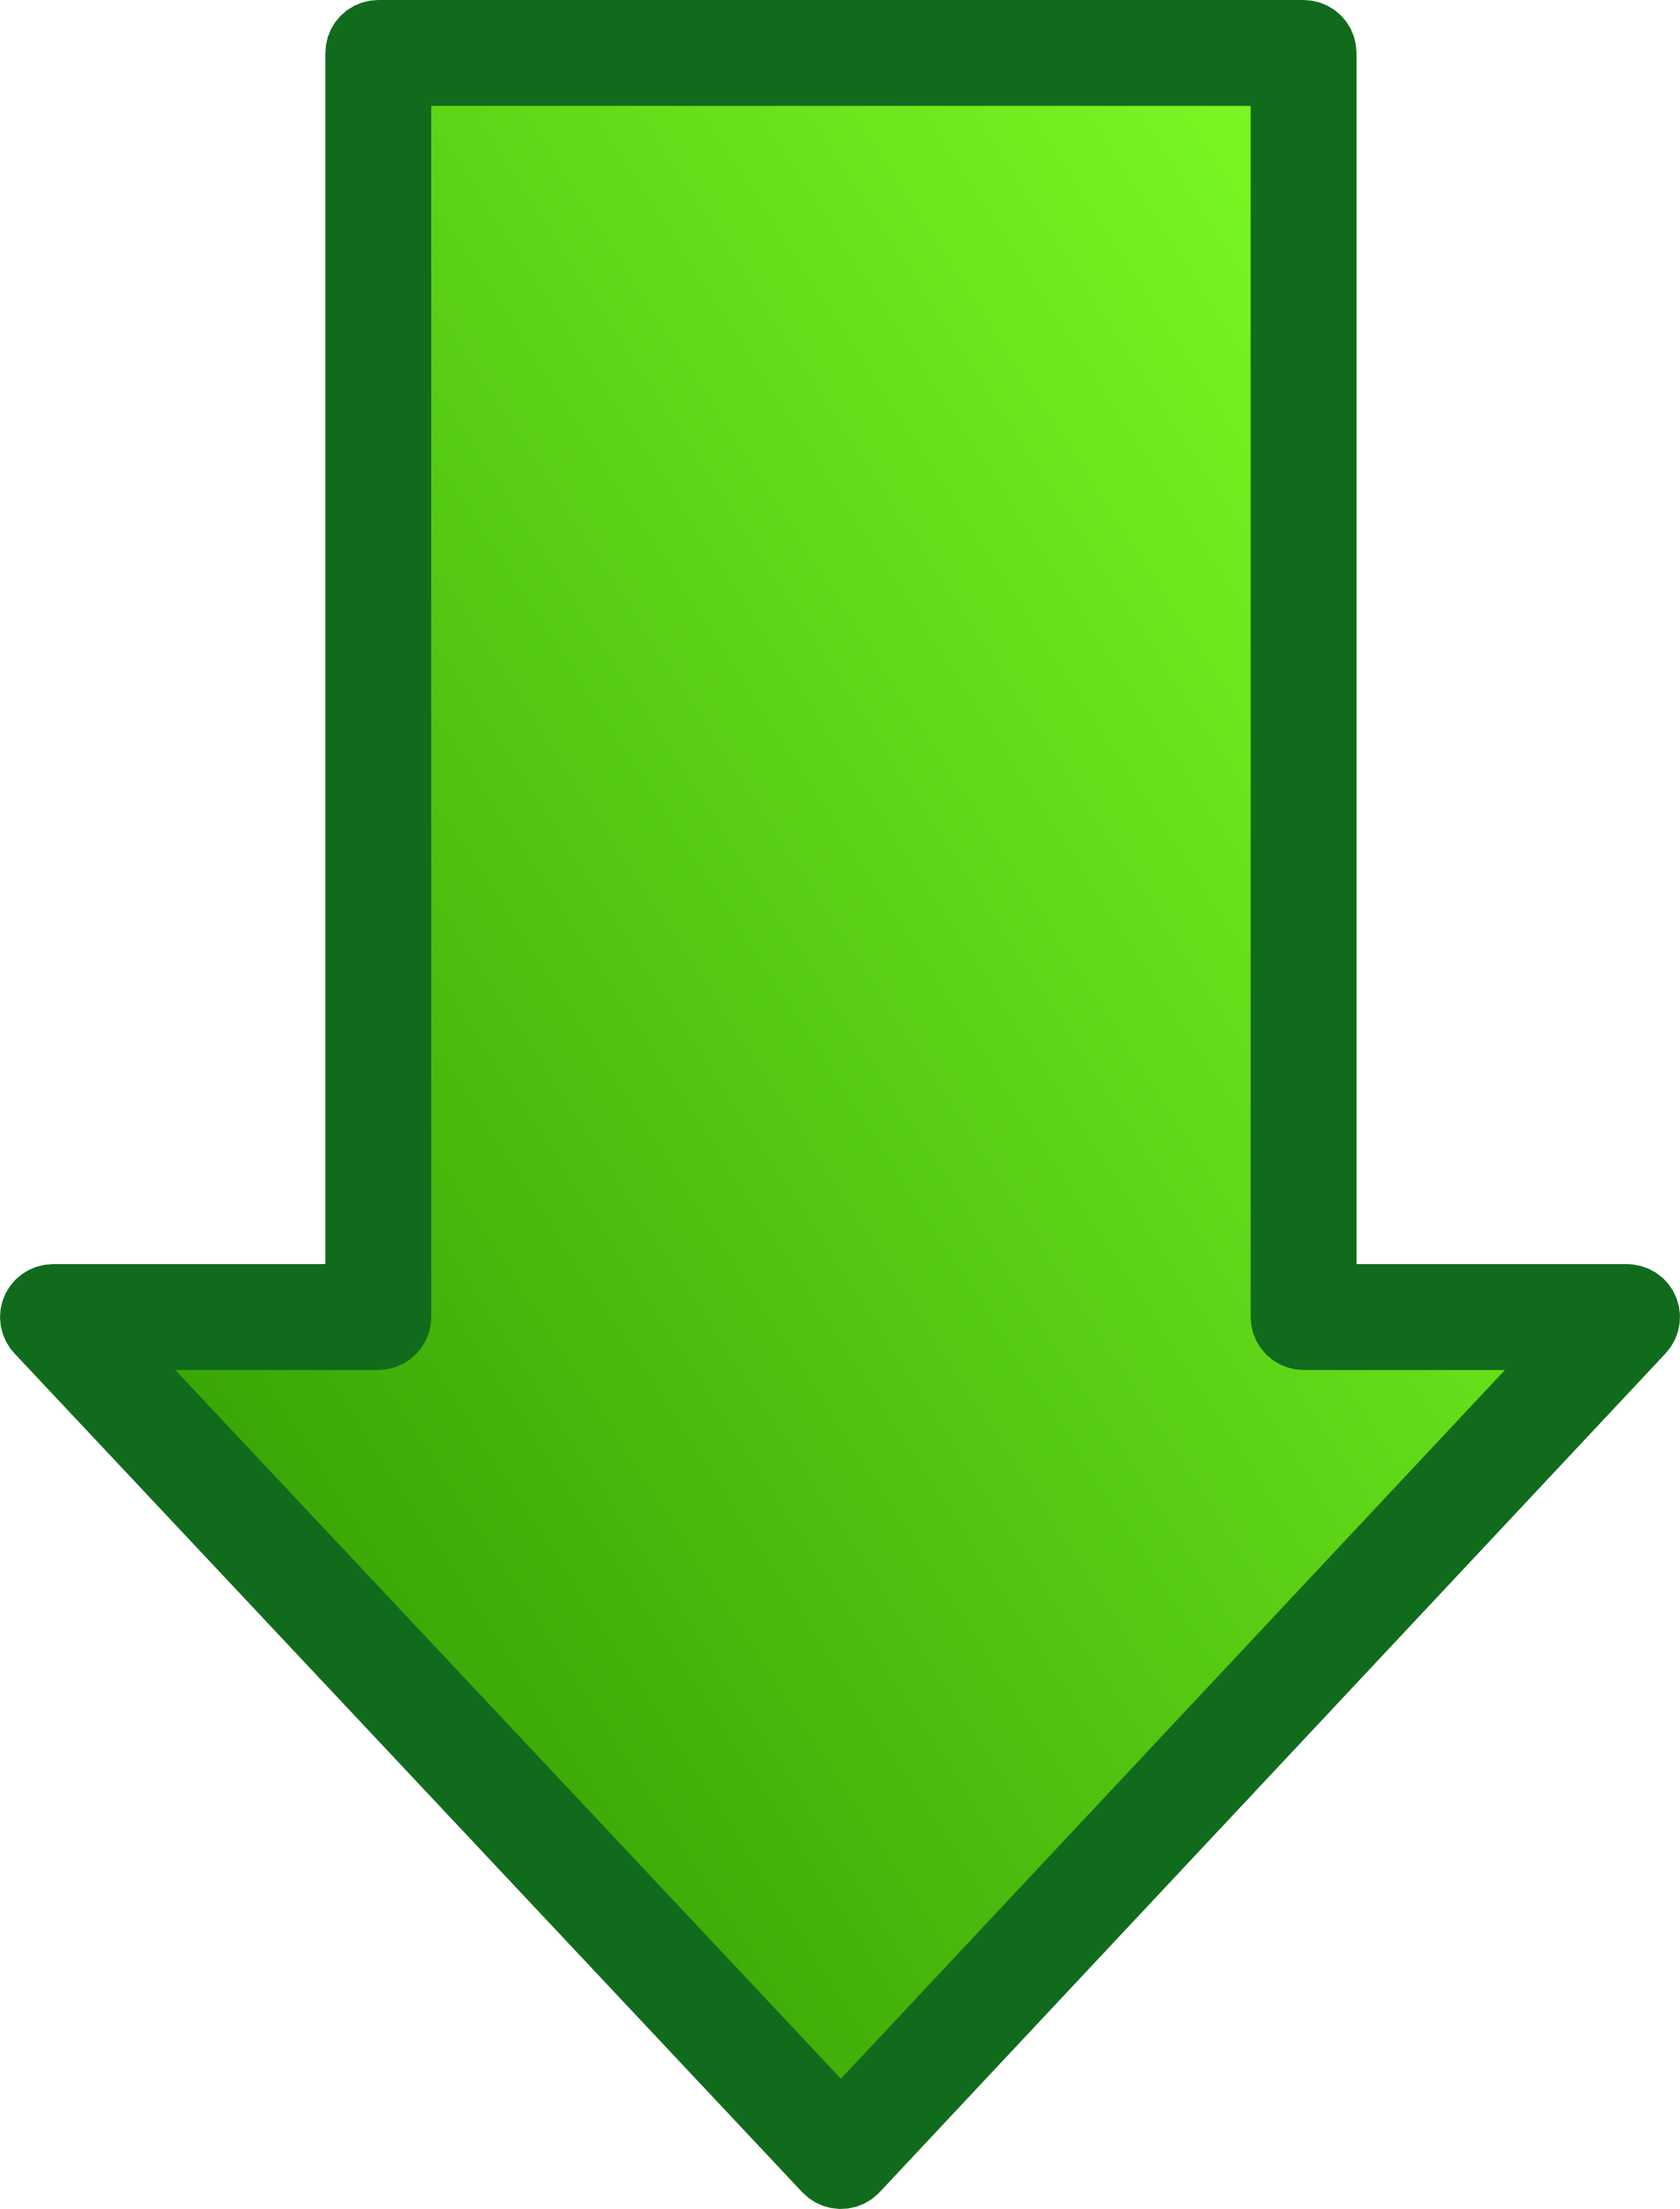 download arrow png